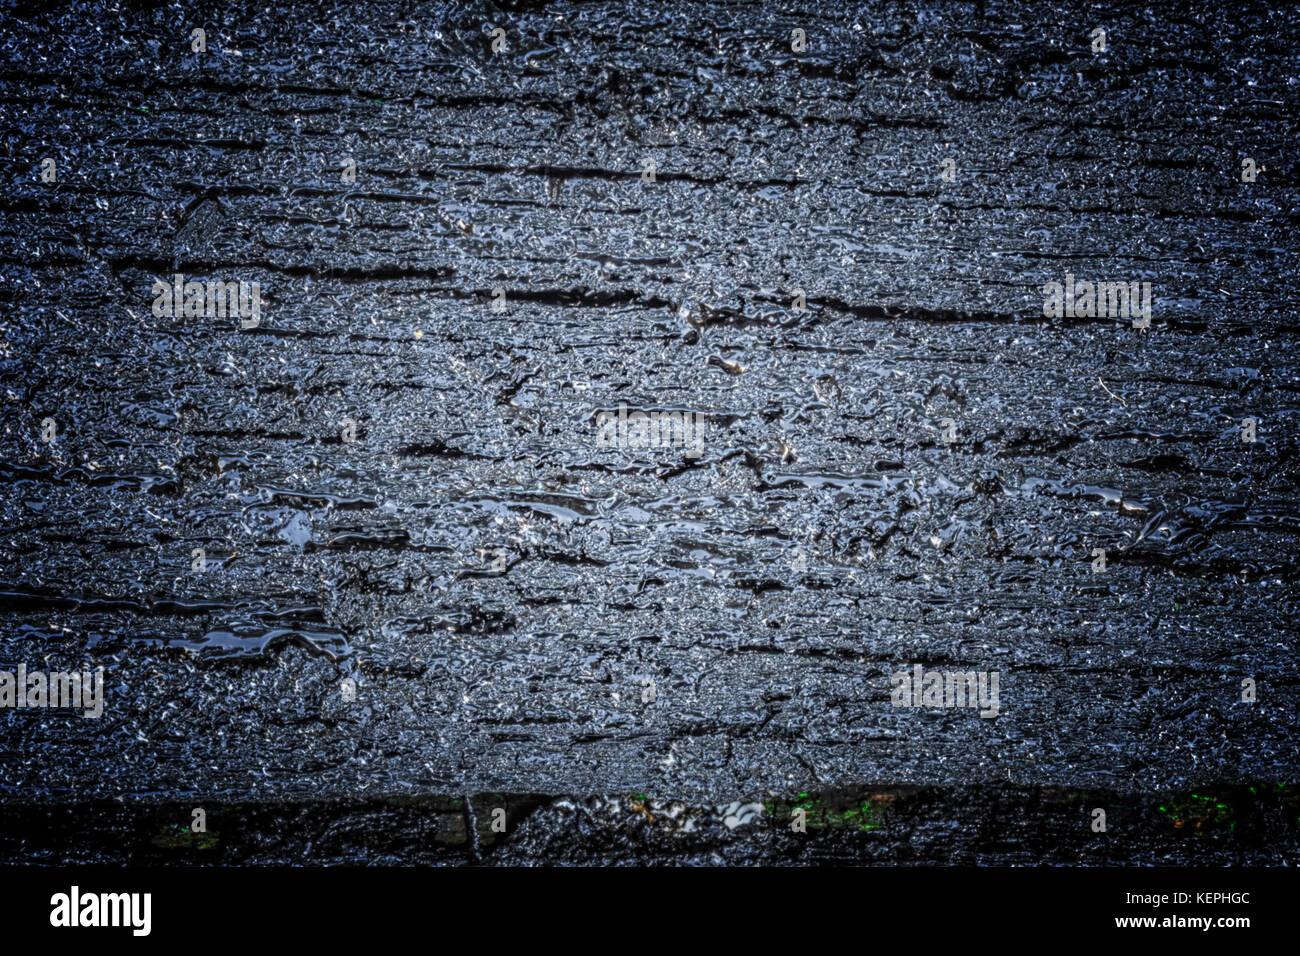 Black Rustic Wood Texture And Cracks On The Surface As Background